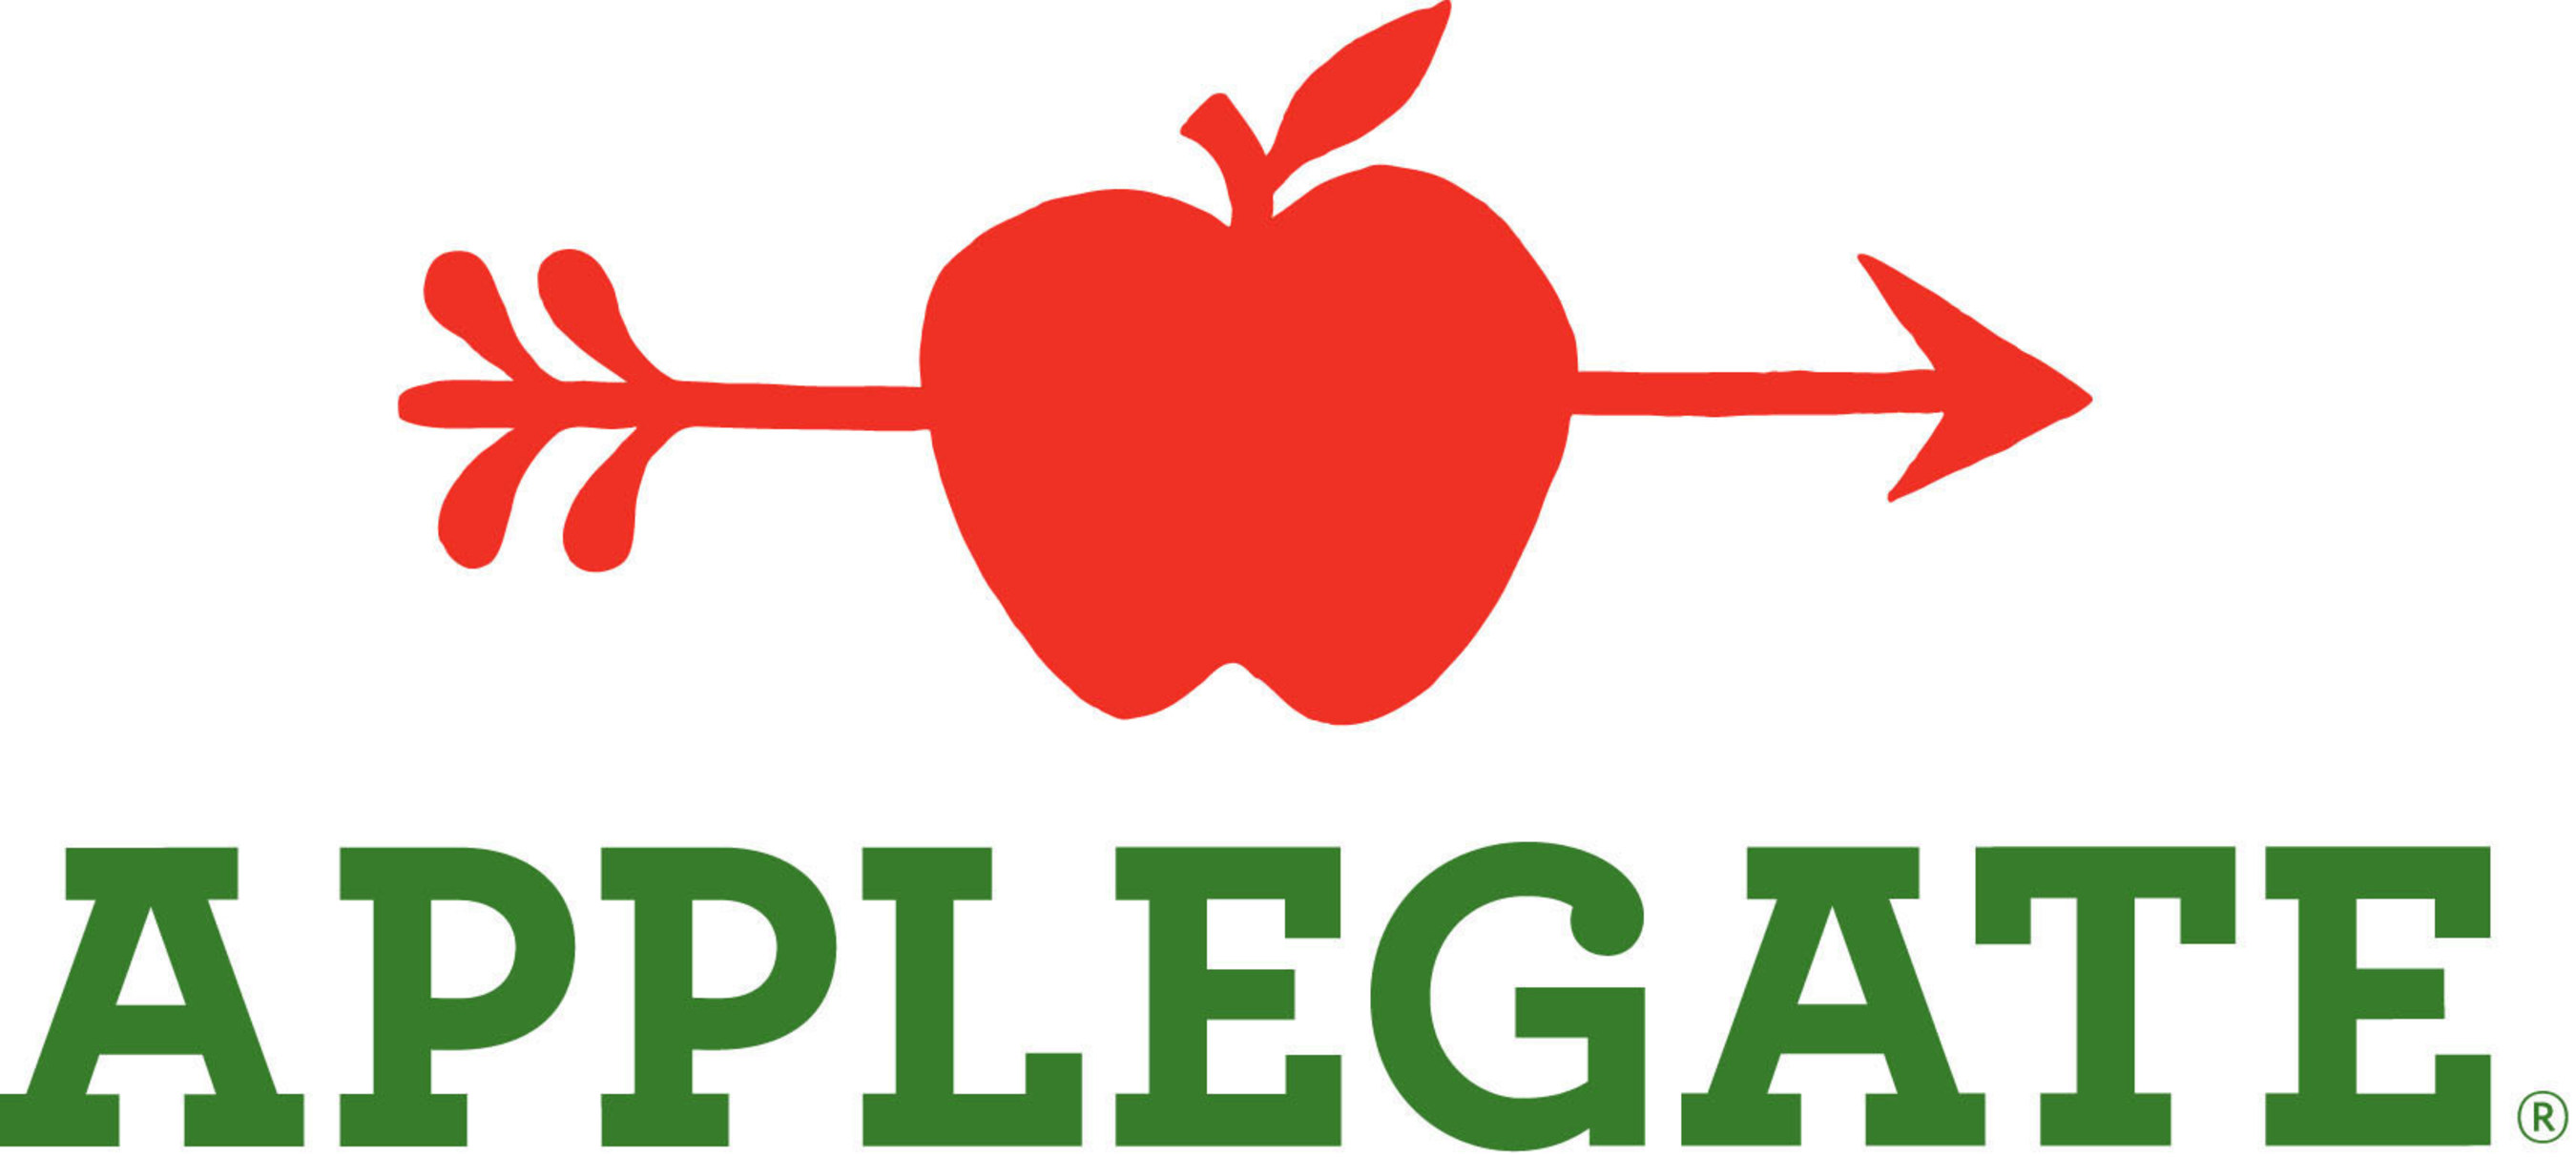 Applegate is the country's leading producer of natural and organic meats.